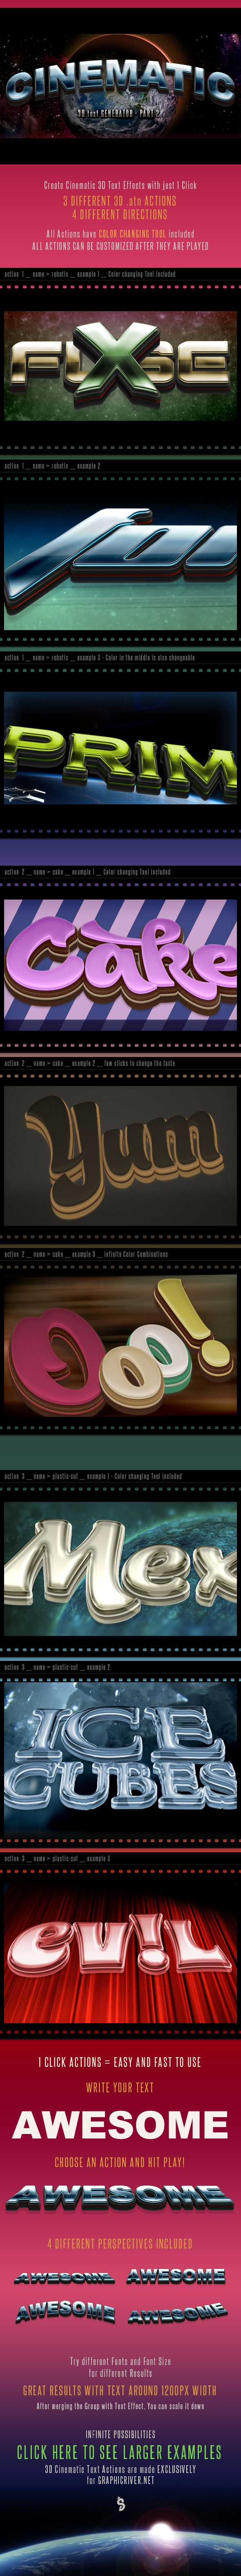 3D #Cinematic Text Generator 2 - Actions - Actions Photoshop #Actions #Text #Letters #TextEffects #TextActions #Photoshop #PSActions